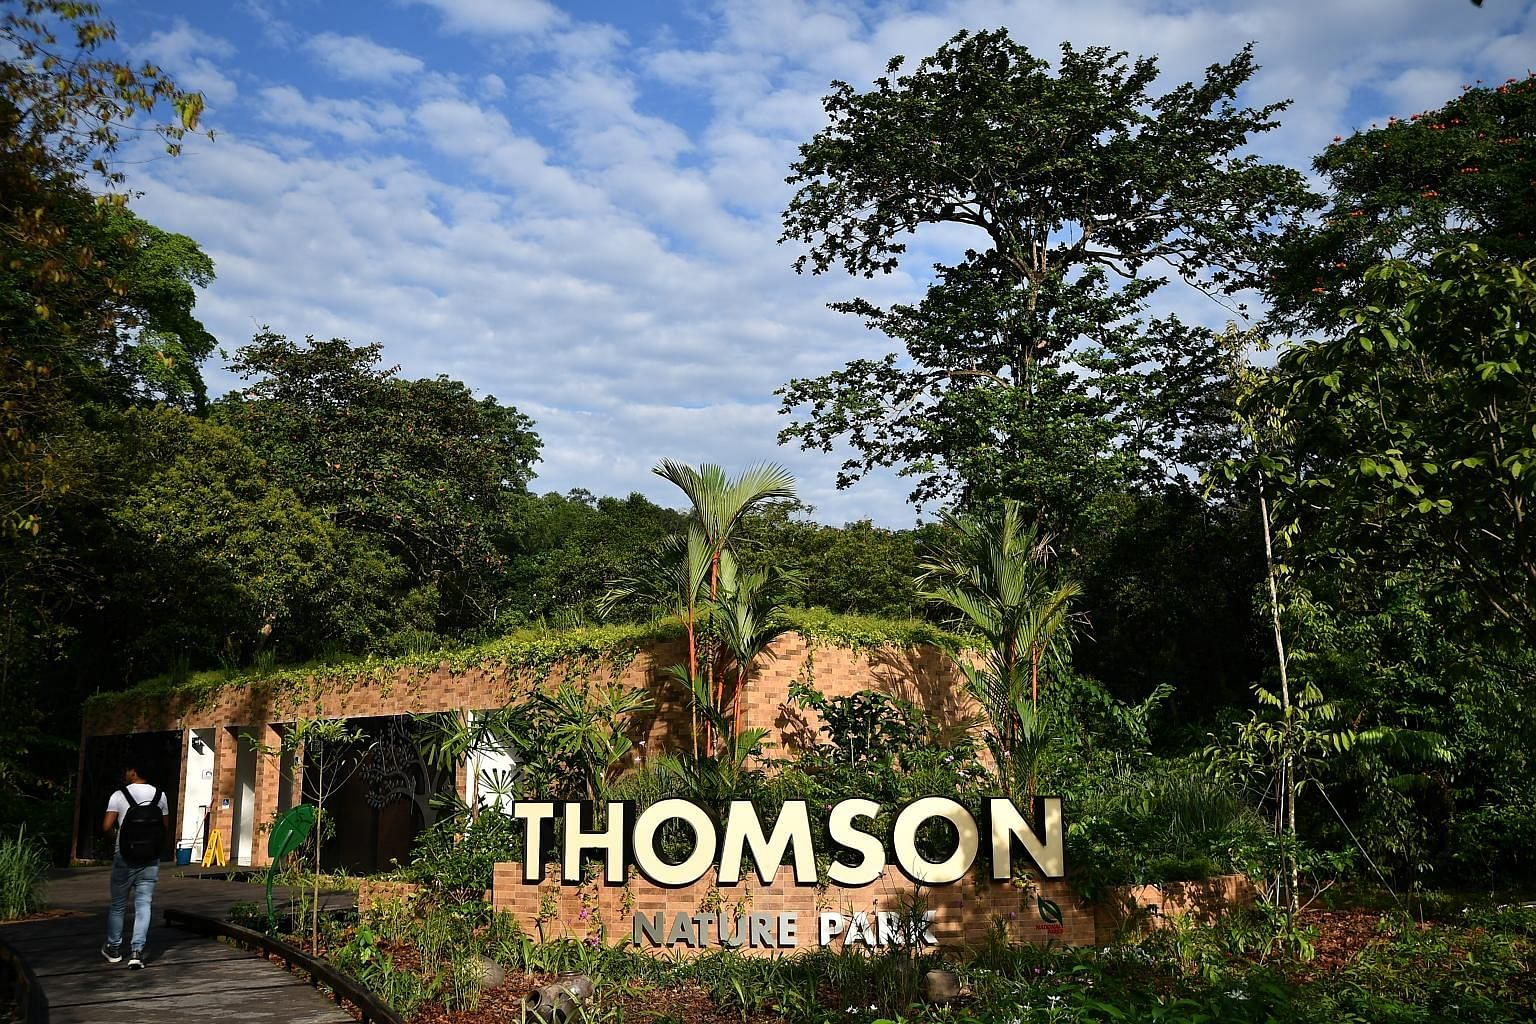 The 50ha Thomson Nature Park is built on the site of a former Hainan village and boasts lush vegetation, including rambutan trees.